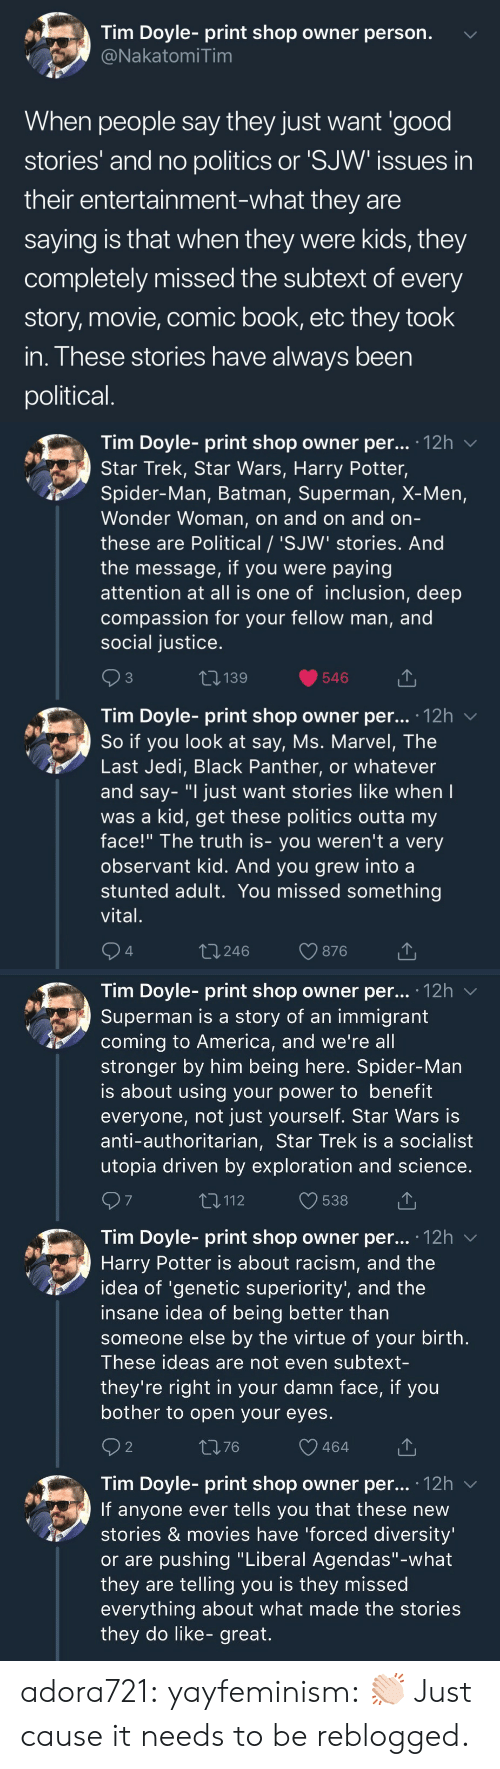 "Wonder Woman: Tim Doyle- print shop owner person.  NakatomiTim  When people say they just want 'good  stories' and no politics or 'SJW issues in  their entertainment-what they are  saying is that when they were kids, they  completely missed the subtext of every  story, movie, comic book, etc they took  in. These stories have always been  political   Tim Doyle- print shop owner per... 12h v  Star Trek, Star Wars, Harry Potter,  Spider-Man, Batman, Superman, X-Men,  Wonder Woman, on and on and orn  these are Political / 'SJW' stories. And  the message, if you were paying  attention at all is one of inclusion, deep  compassion for your fellow man, and  social justice  3  139  546  Tim Dovle-print shop owner per... 12h  So if you look at say, Ms. Marvel, The  Last Jedi, Black Panther, or whatever  and say- ""I just want stories like when  was a kid, get these politics outta my  face!"" The truth is- you weren't a very  observant kid. And you grew into a  stunted adult. You missed something  vital  4  t 246  876   Tim Doyle- print shop owner per... '12h v  Superman is a story of an immigrant  coming to America, and we're all  stronger by him being here. Spider-Man  is about using your power to benefit  everyone, not just yourself. Star Wars is  anti-authoritarian, Star Trek is a socialist  utopia driven by exploration and science  7  T,112  538  Tim Doyle- print shop owner per... .12h  Harry Potter is about racism, and the  idea of 'genetic superiority', and the  insane idea of being better than  someone else by the virtue of your birth  These ideas are not even subtext-  they're right in your damn face, if you  bother to open your eyes  2  1376  464  Tim Doyle- print shop owner per... 12h v  If anyone ever tells you that these new  stories & movies have 'forced diversity  or are pushing ""Liberal Agendas""-what  they are telling you is they missed  everything about what made the stories  they do like- great. adora721: yayfeminism: 👏🏻 Just cause it needs to be reblogged."